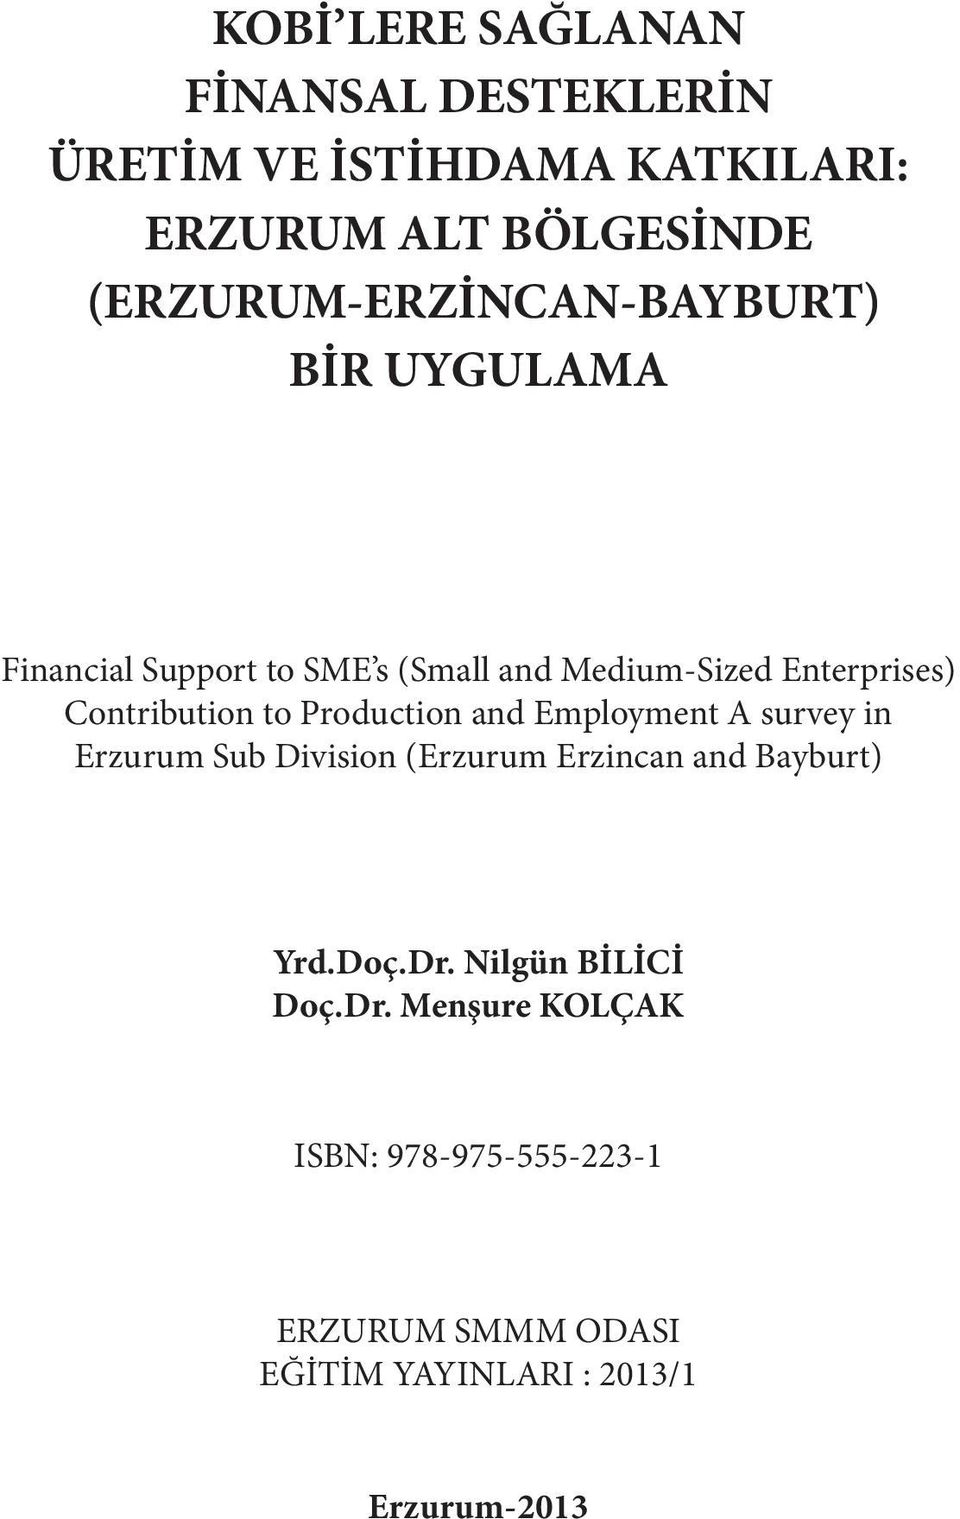 Contribution to Production and Employment A survey in Erzurum Sub Division (Erzurum Erzincan and Bayburt)